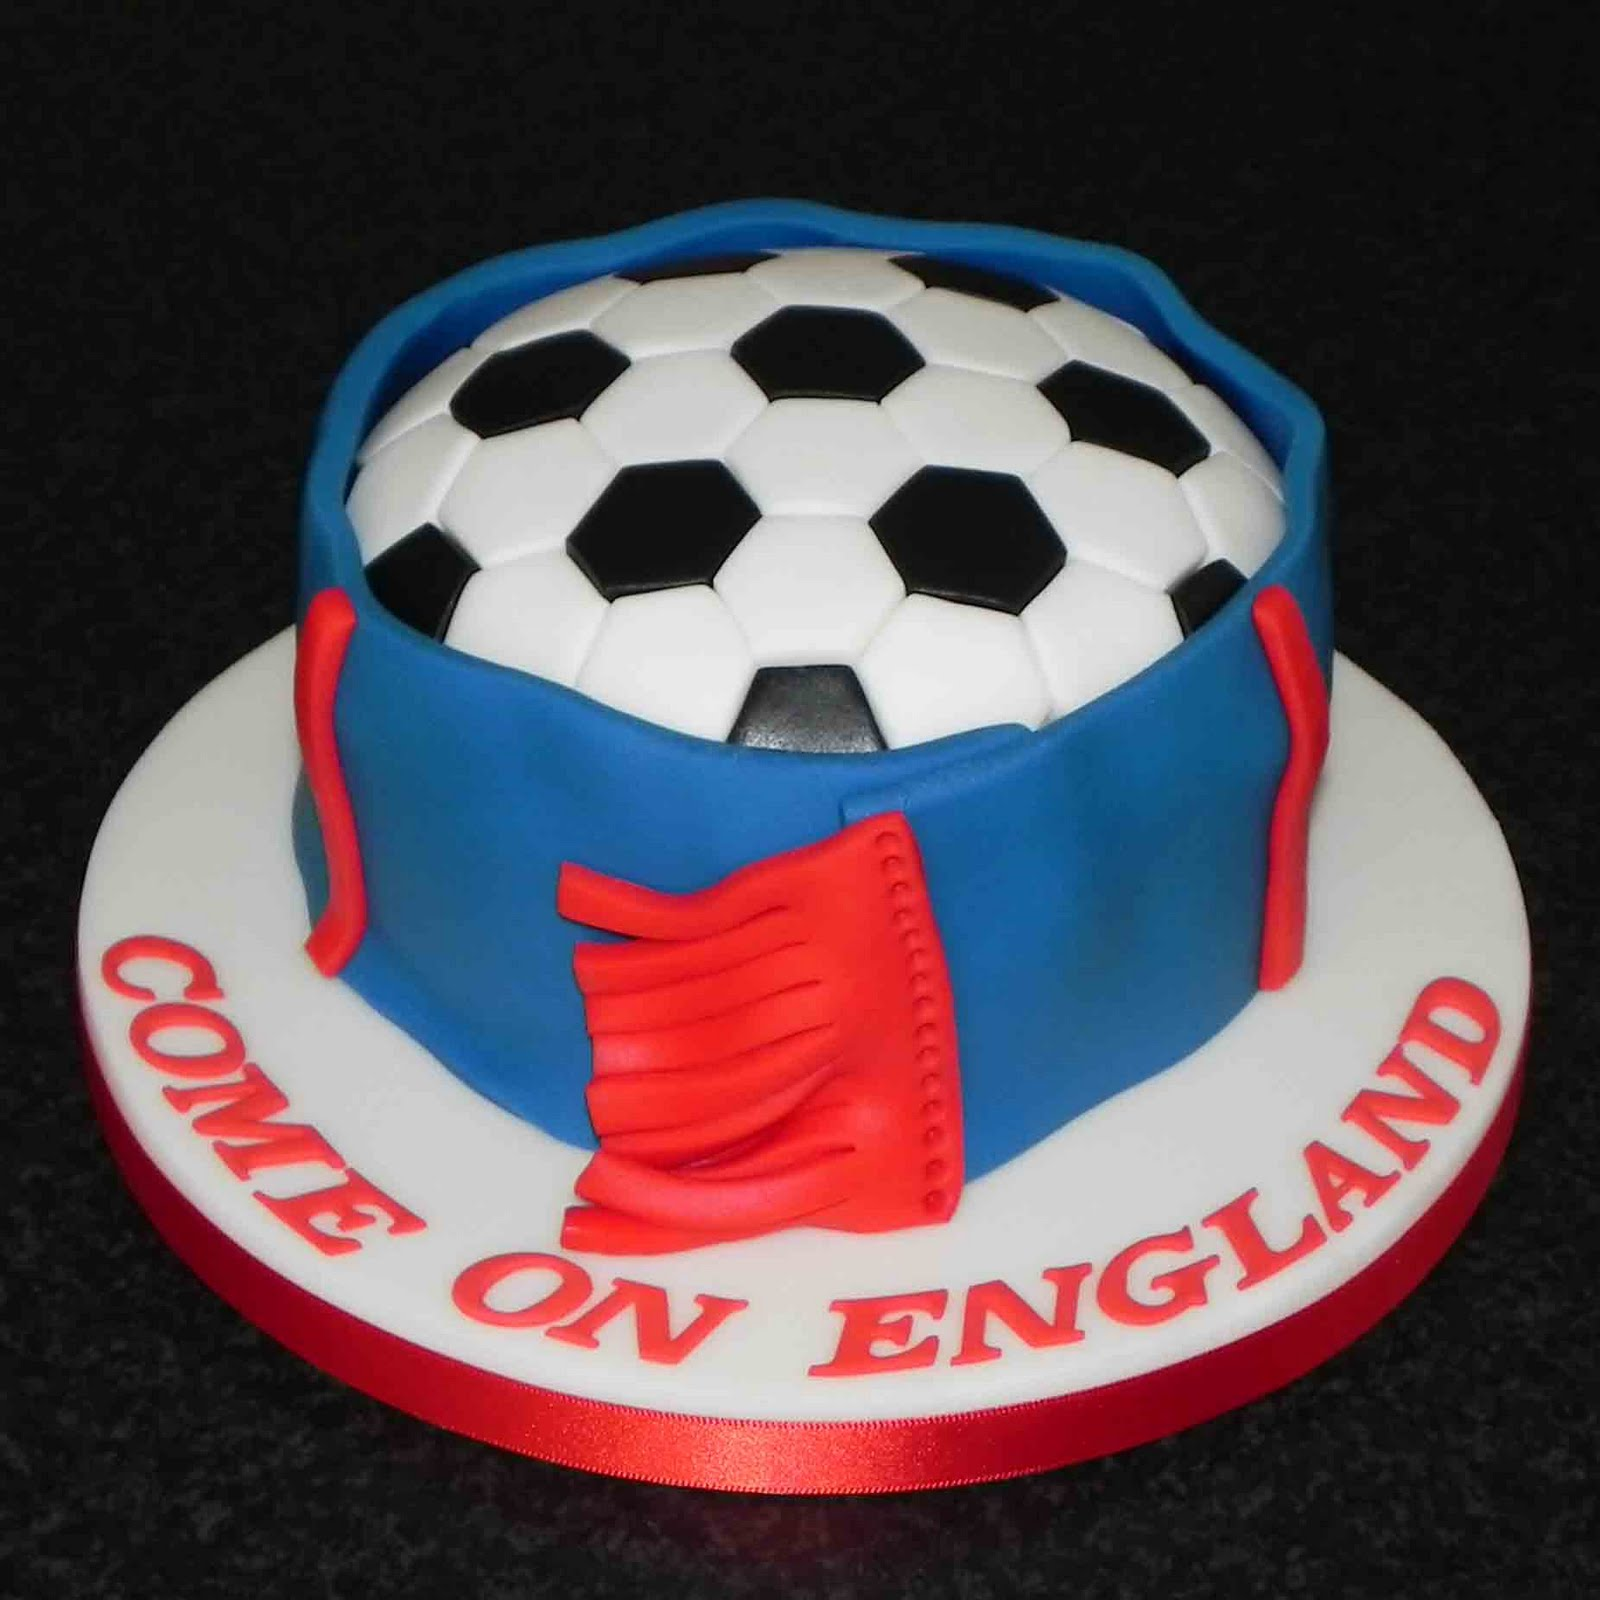 Cake by Lisa Price: Come on England - football cake